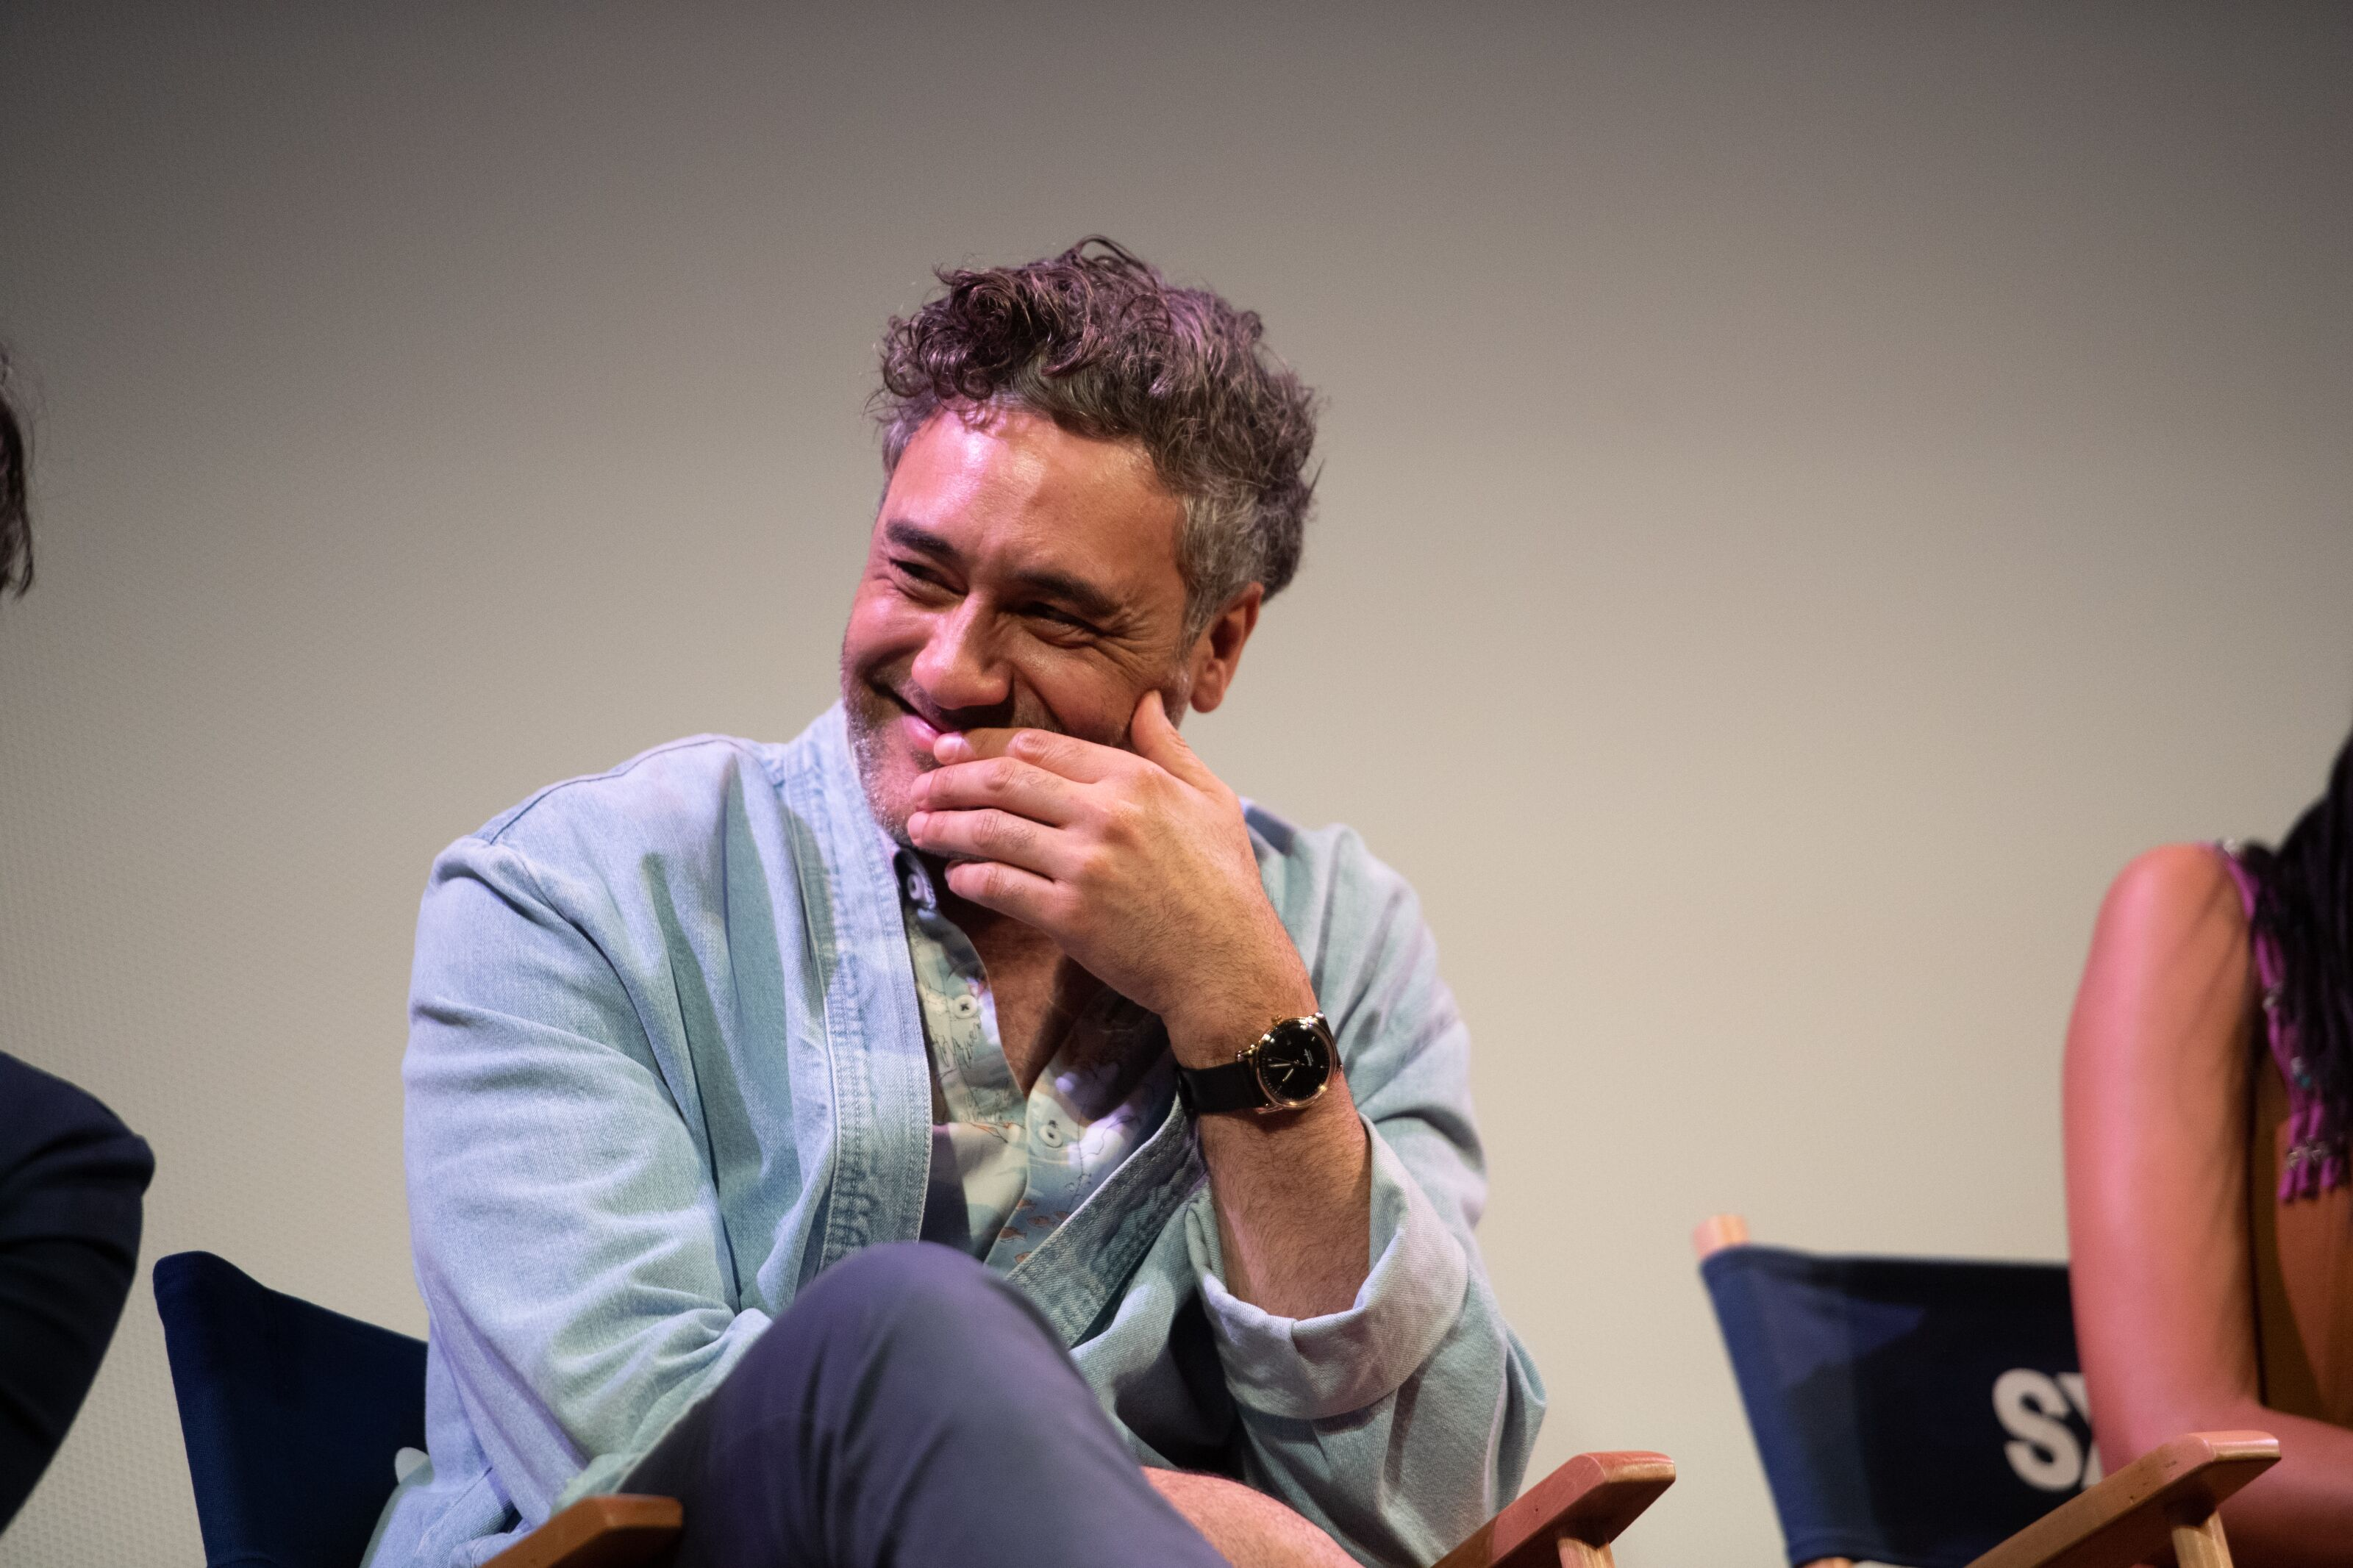 Taika Waititi won't only direct The Mandalorian, but voice a character too